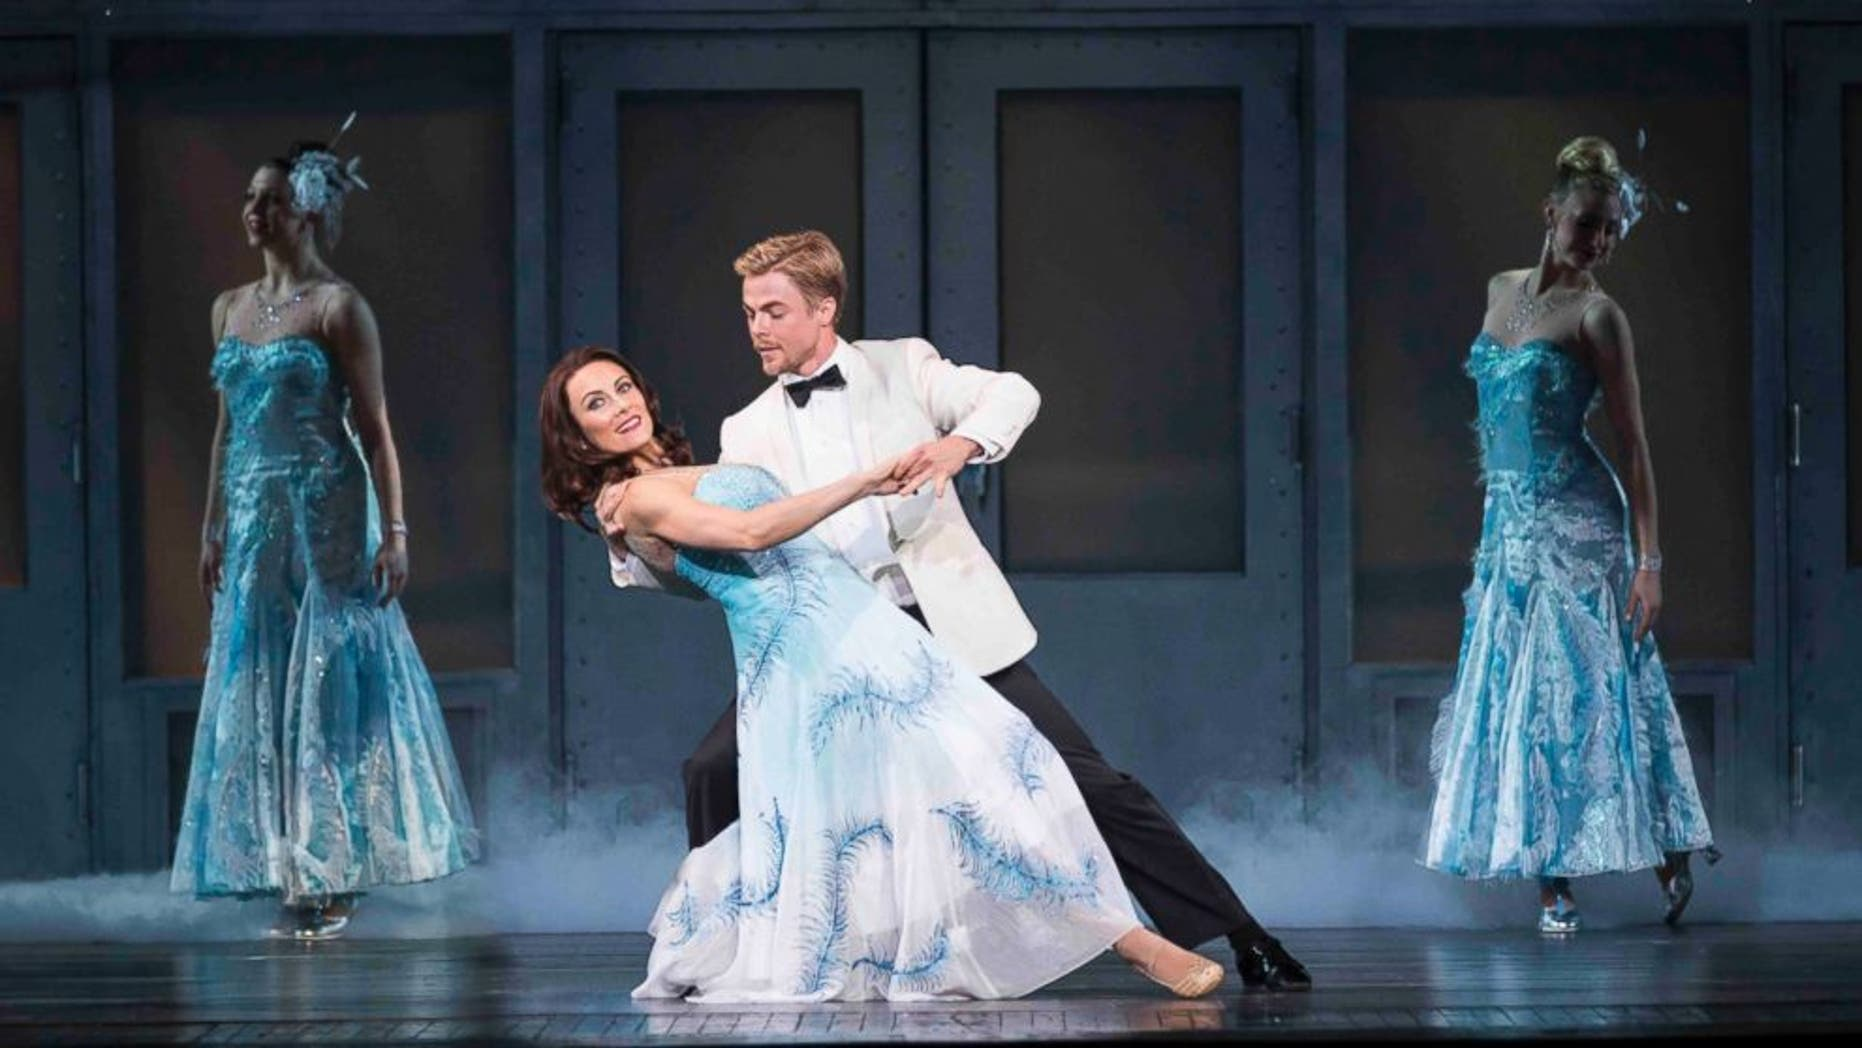 Laura Benanti, left, and Derek Hough, in a rehearsal for the New York Spring Spectacular at Radio City Music Hall in N.Y.